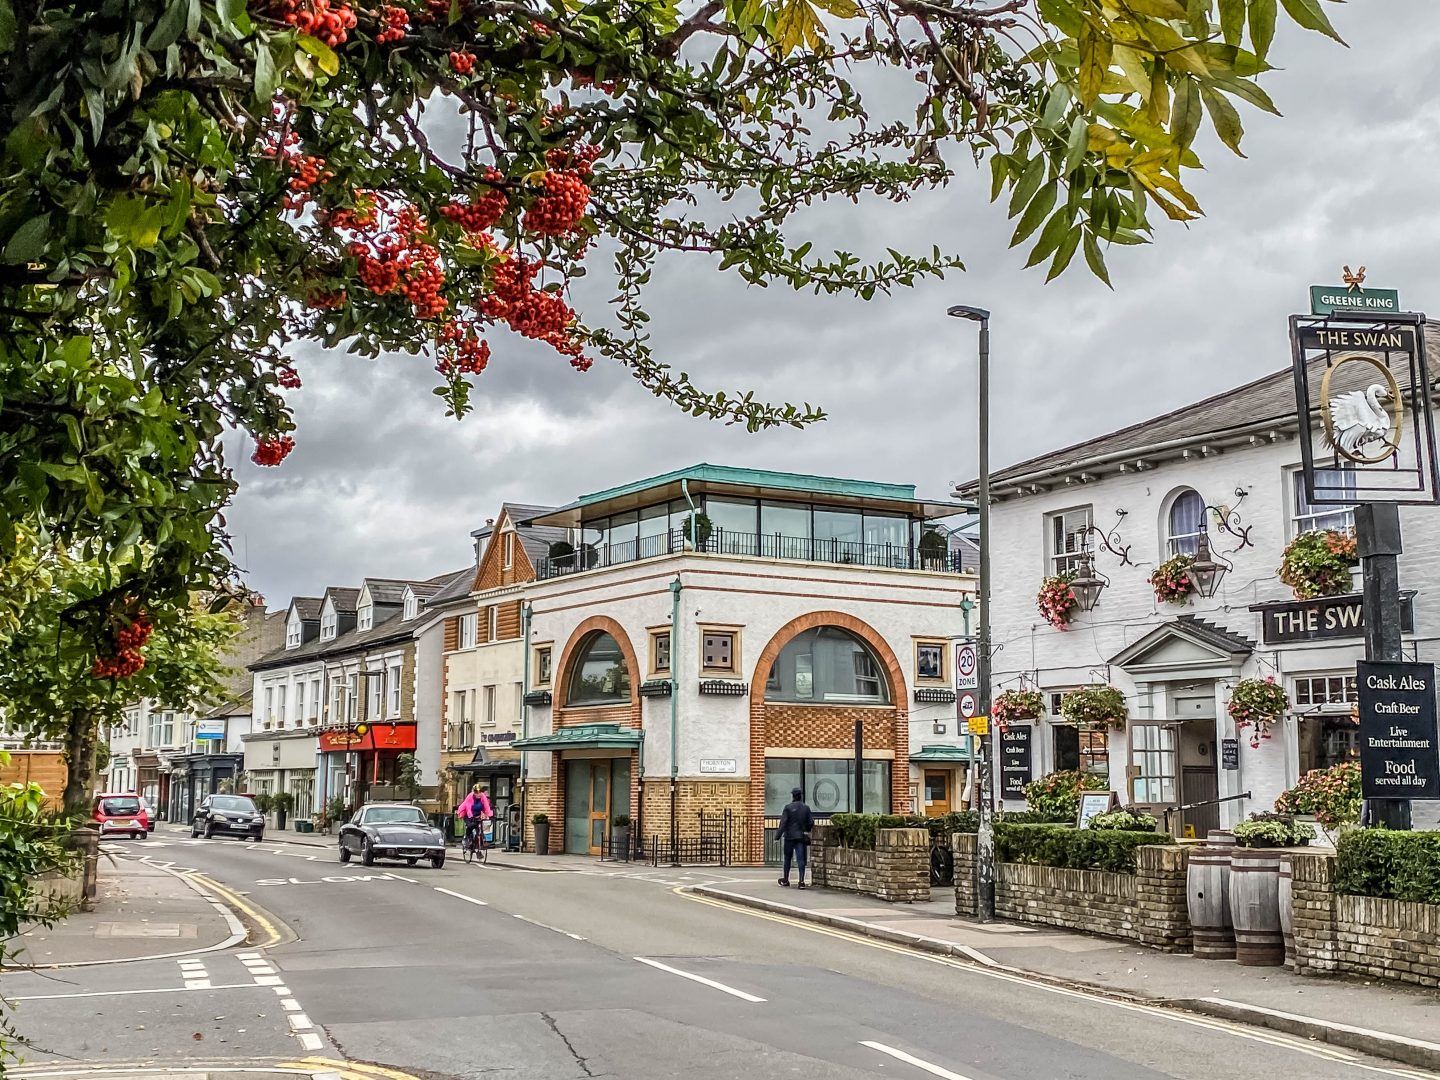 Guide to explore Wimbledon village